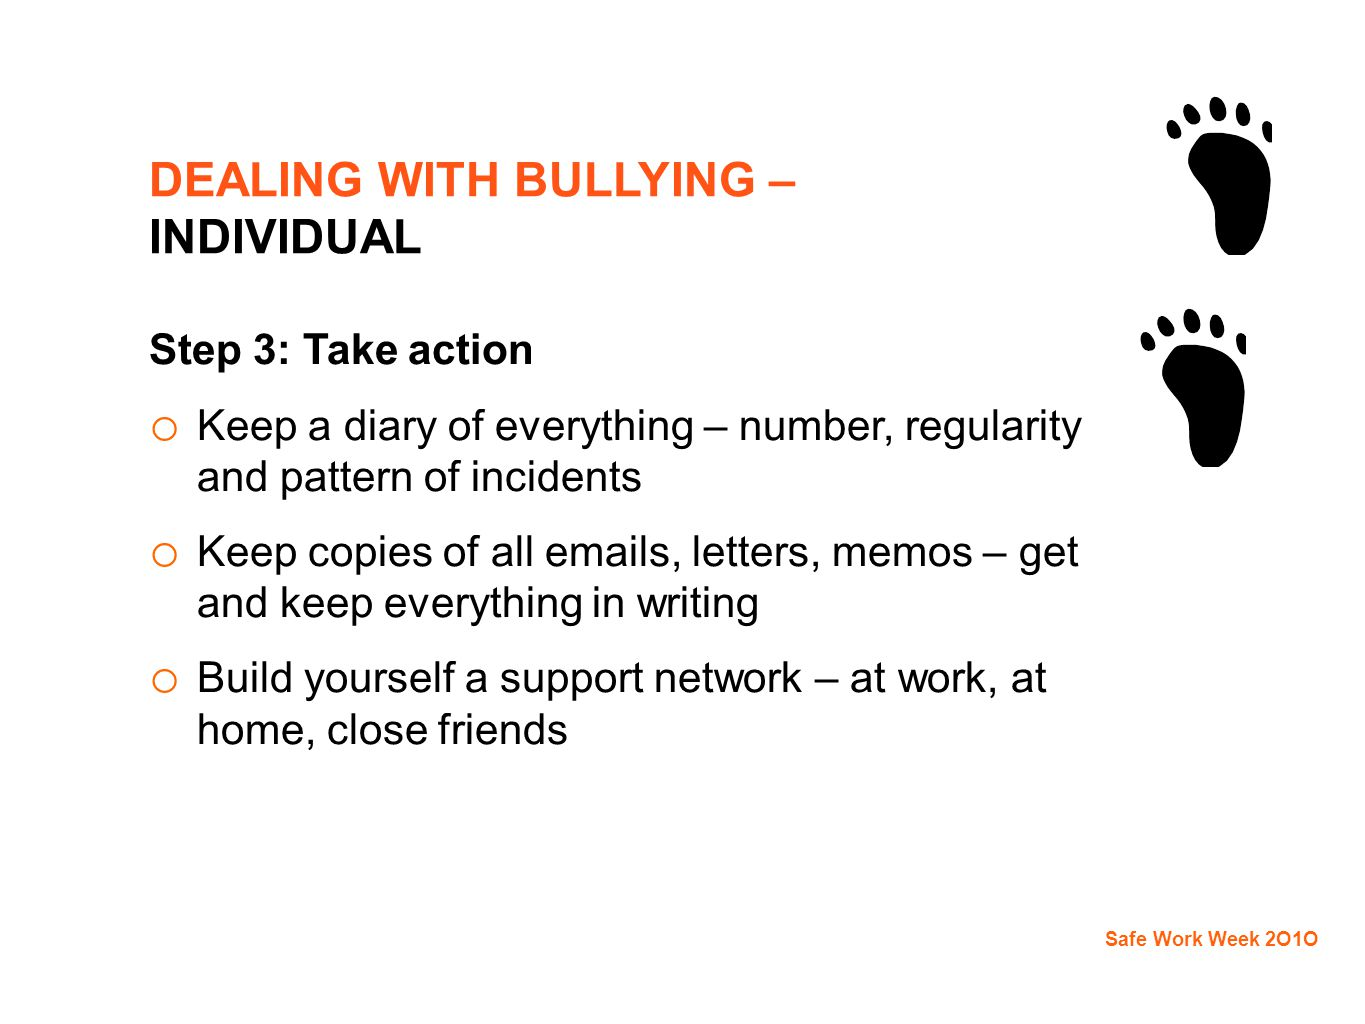 DEALING WITH BULLYING – INDIVIDUAL Step 3: Take action o Keep a diary of everything – number, regularity and pattern of incidents o Keep copies of all emails, letters, memos – get and keep everything in writing o Build yourself a support network – at work, at home, close friends Safe Work Week 2O1O